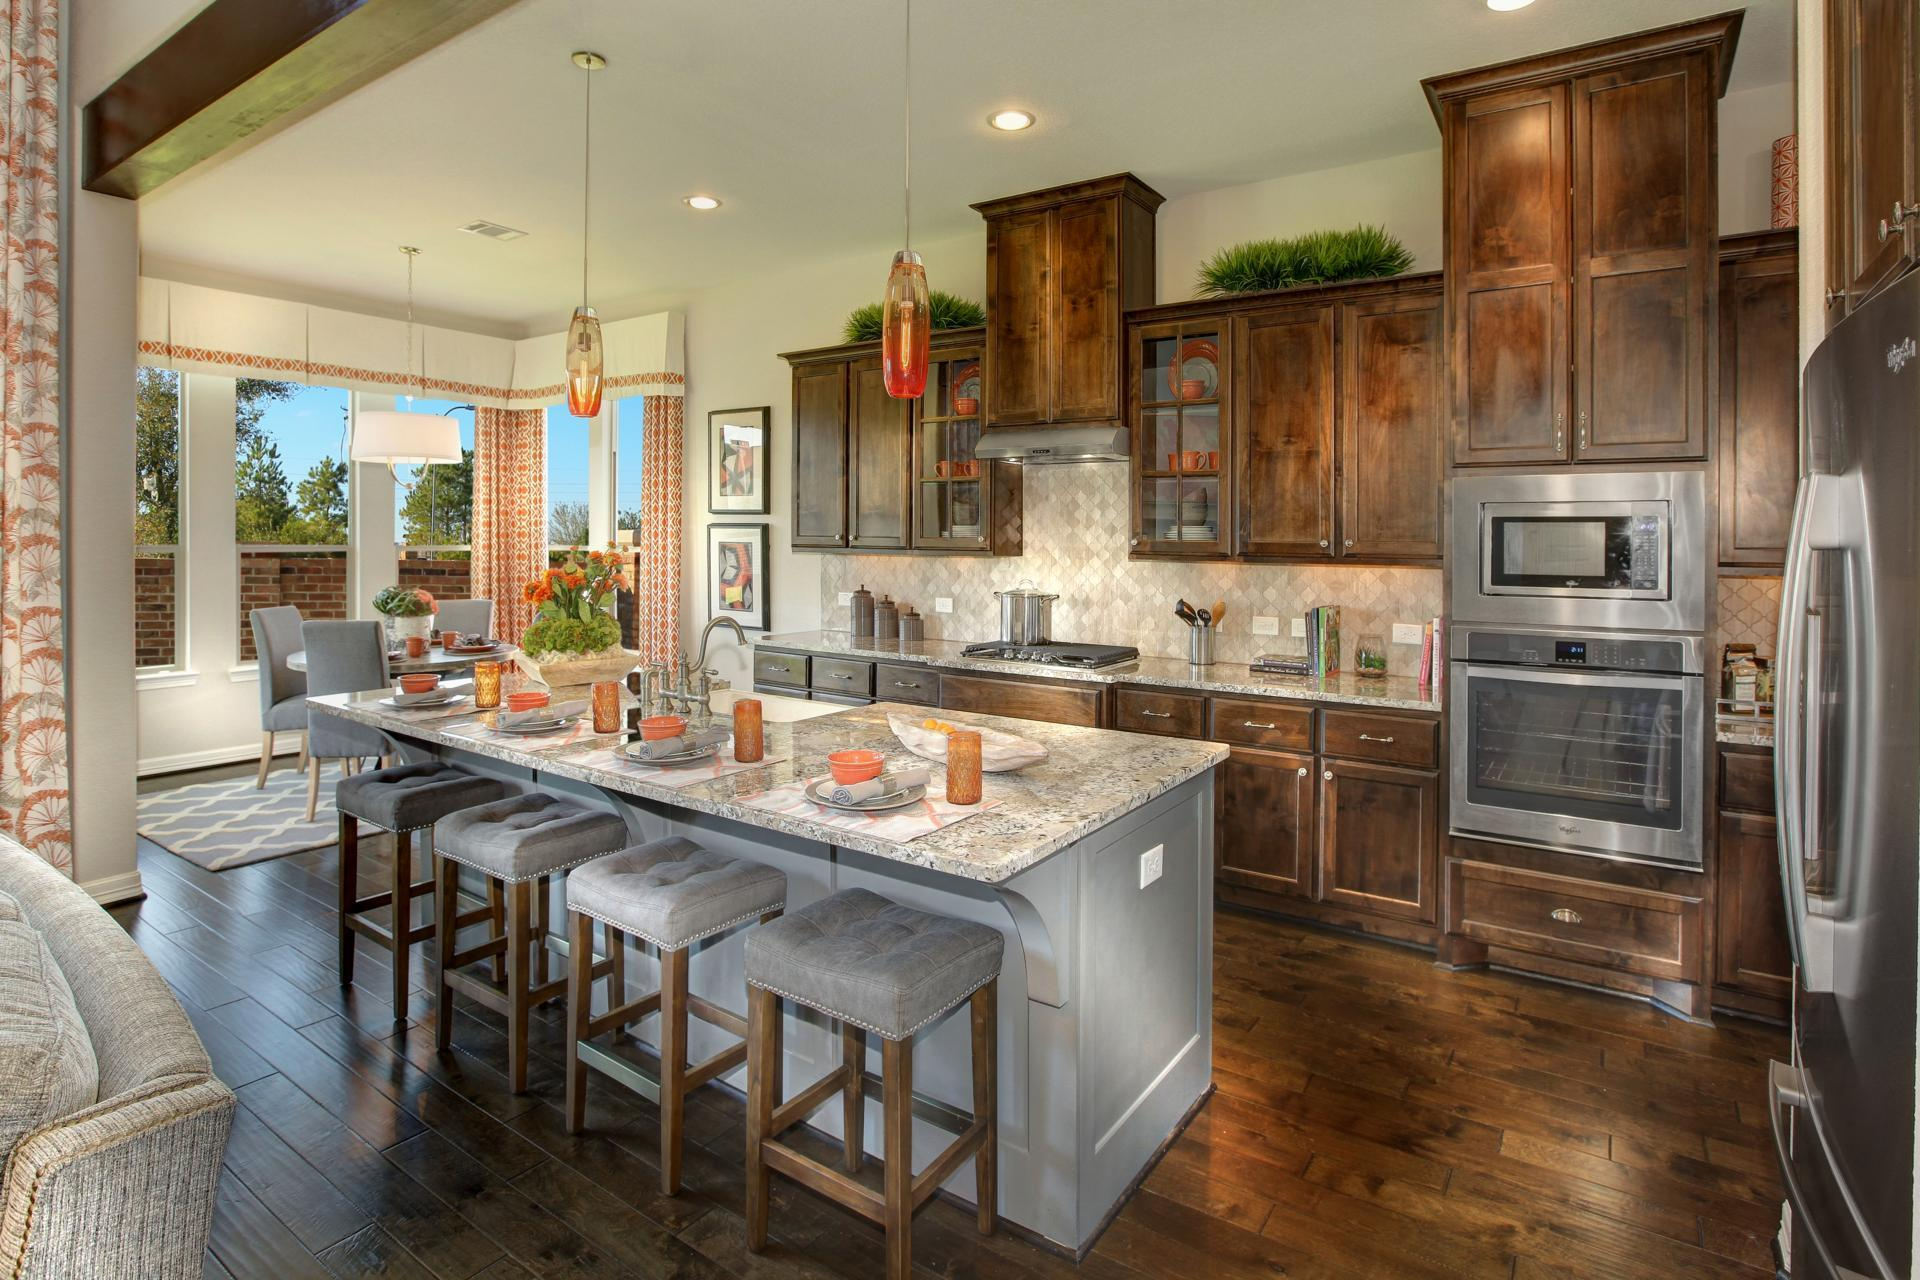 Kitchen featured in the Deerfield II By Drees Custom Homes in Austin, TX